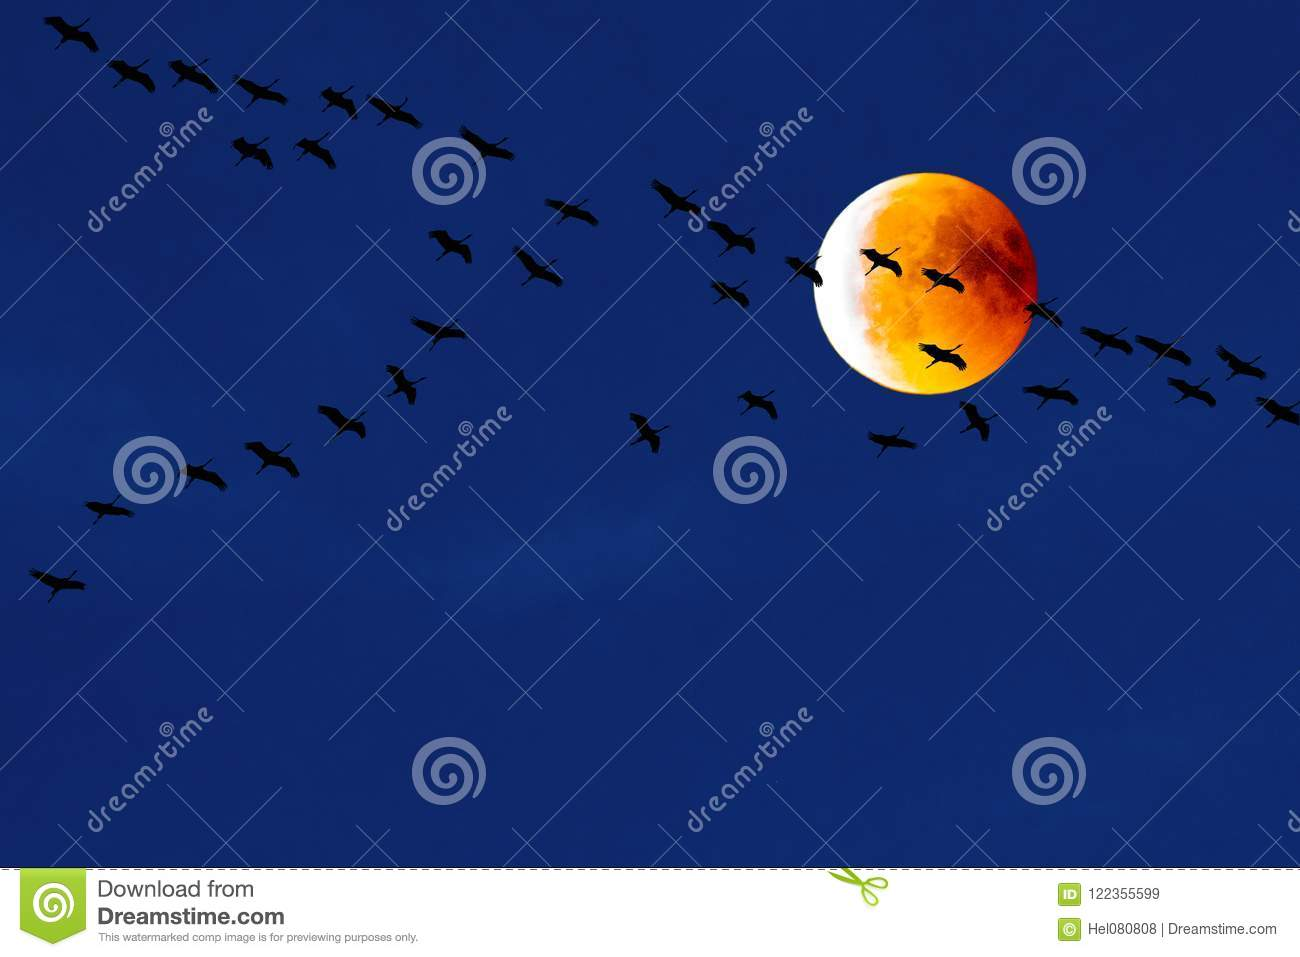 Teamwork: Cranes flying in front of blood moon, partial lunar eclipse, migration birds, flying cranes